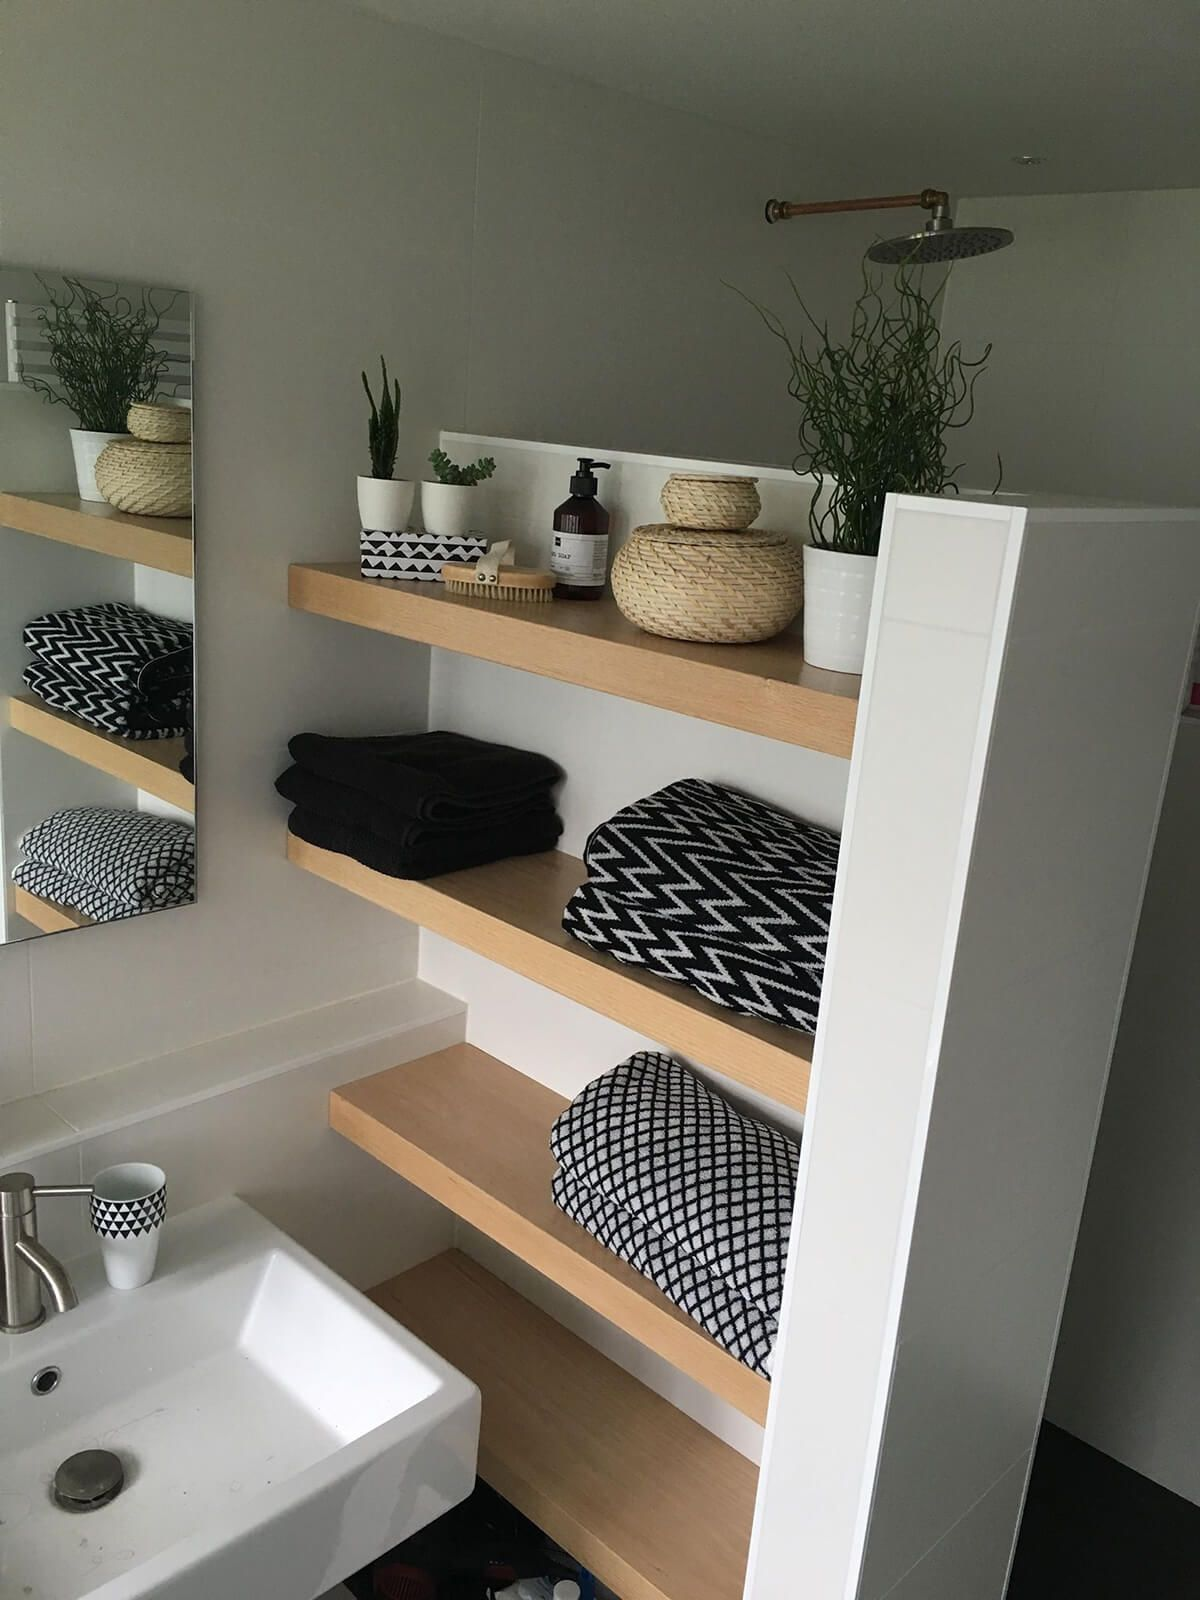 Photo of 25 Brilliant Built-in Bathroom Shelf and Storage Ideas to Keep You Organized with Style